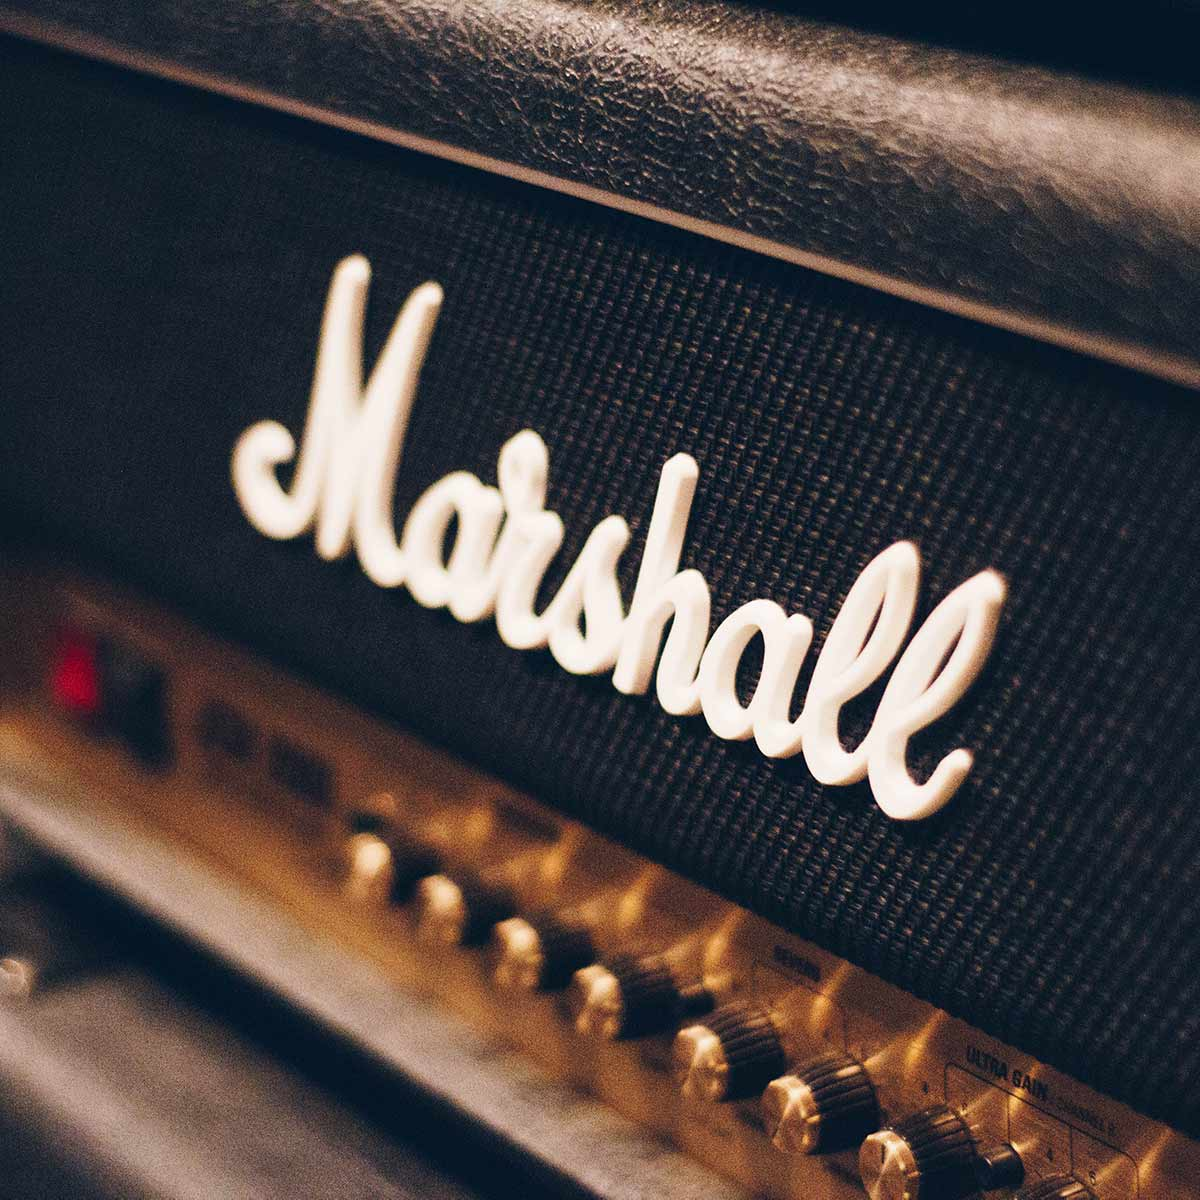 marshall-amp-square-small